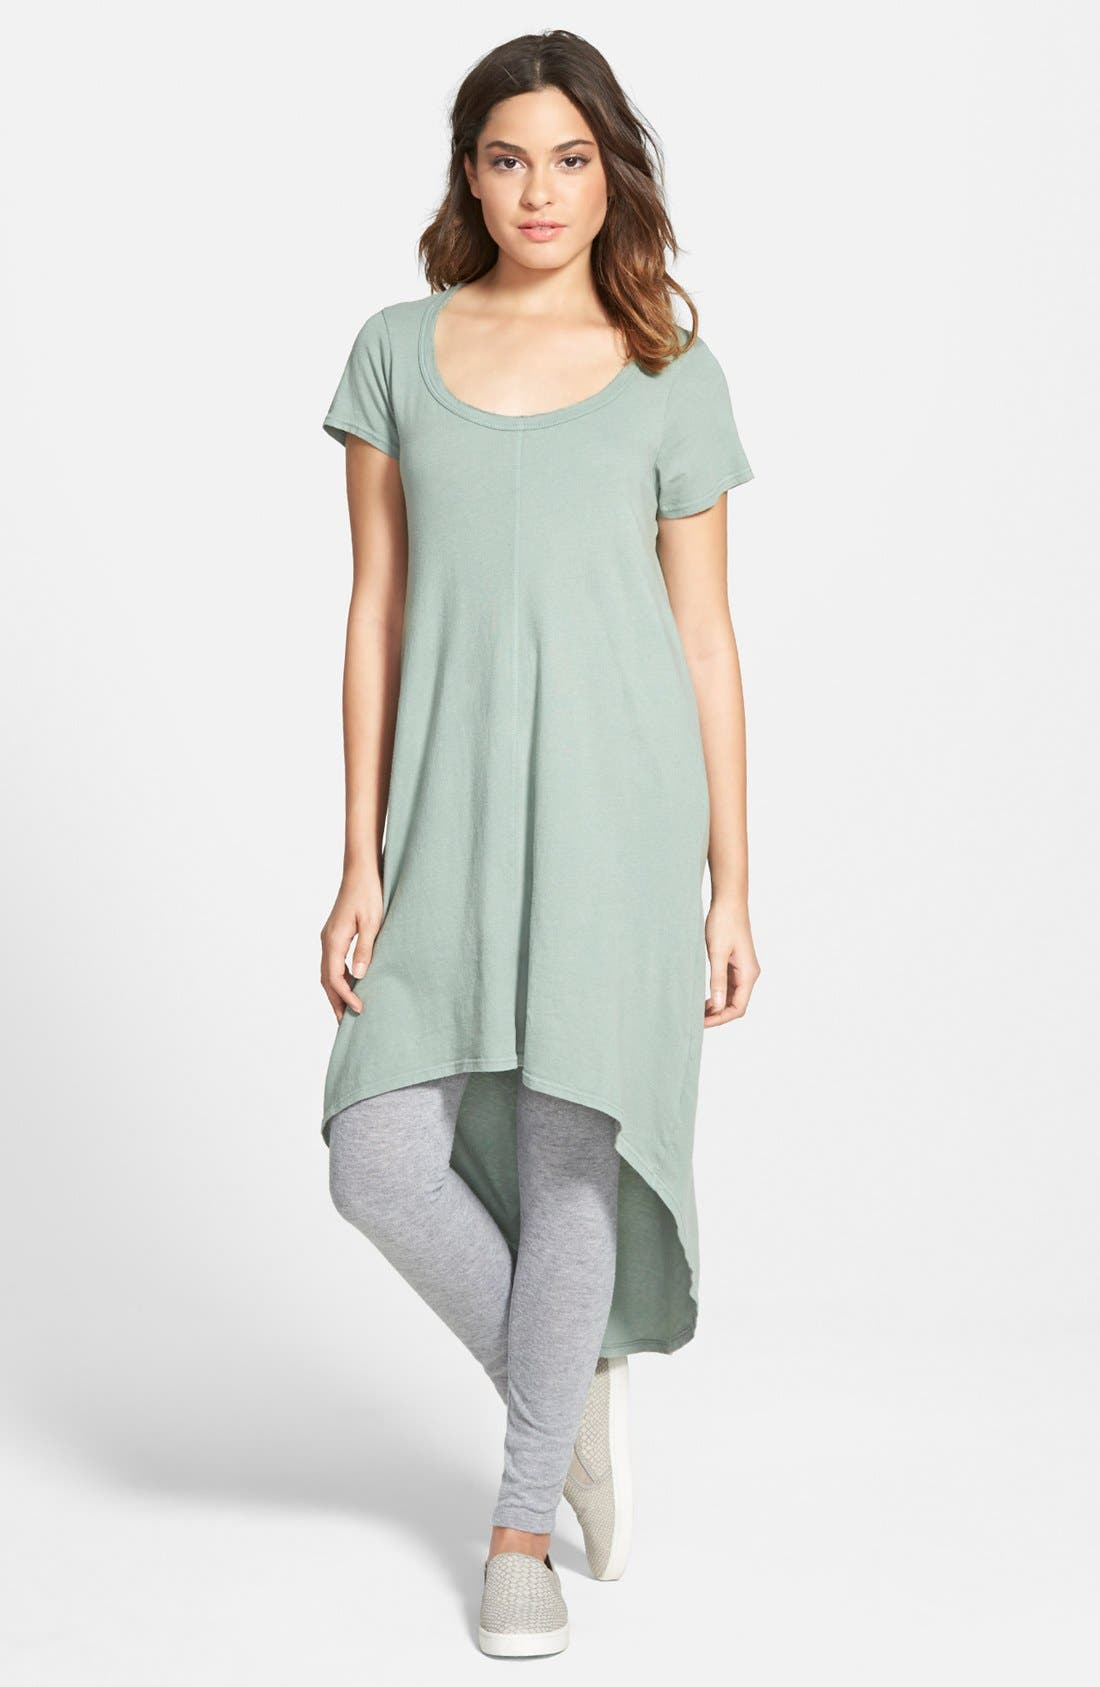 Alternate Image 1 Selected - Project Social T Oversize T-Shirt Tunic